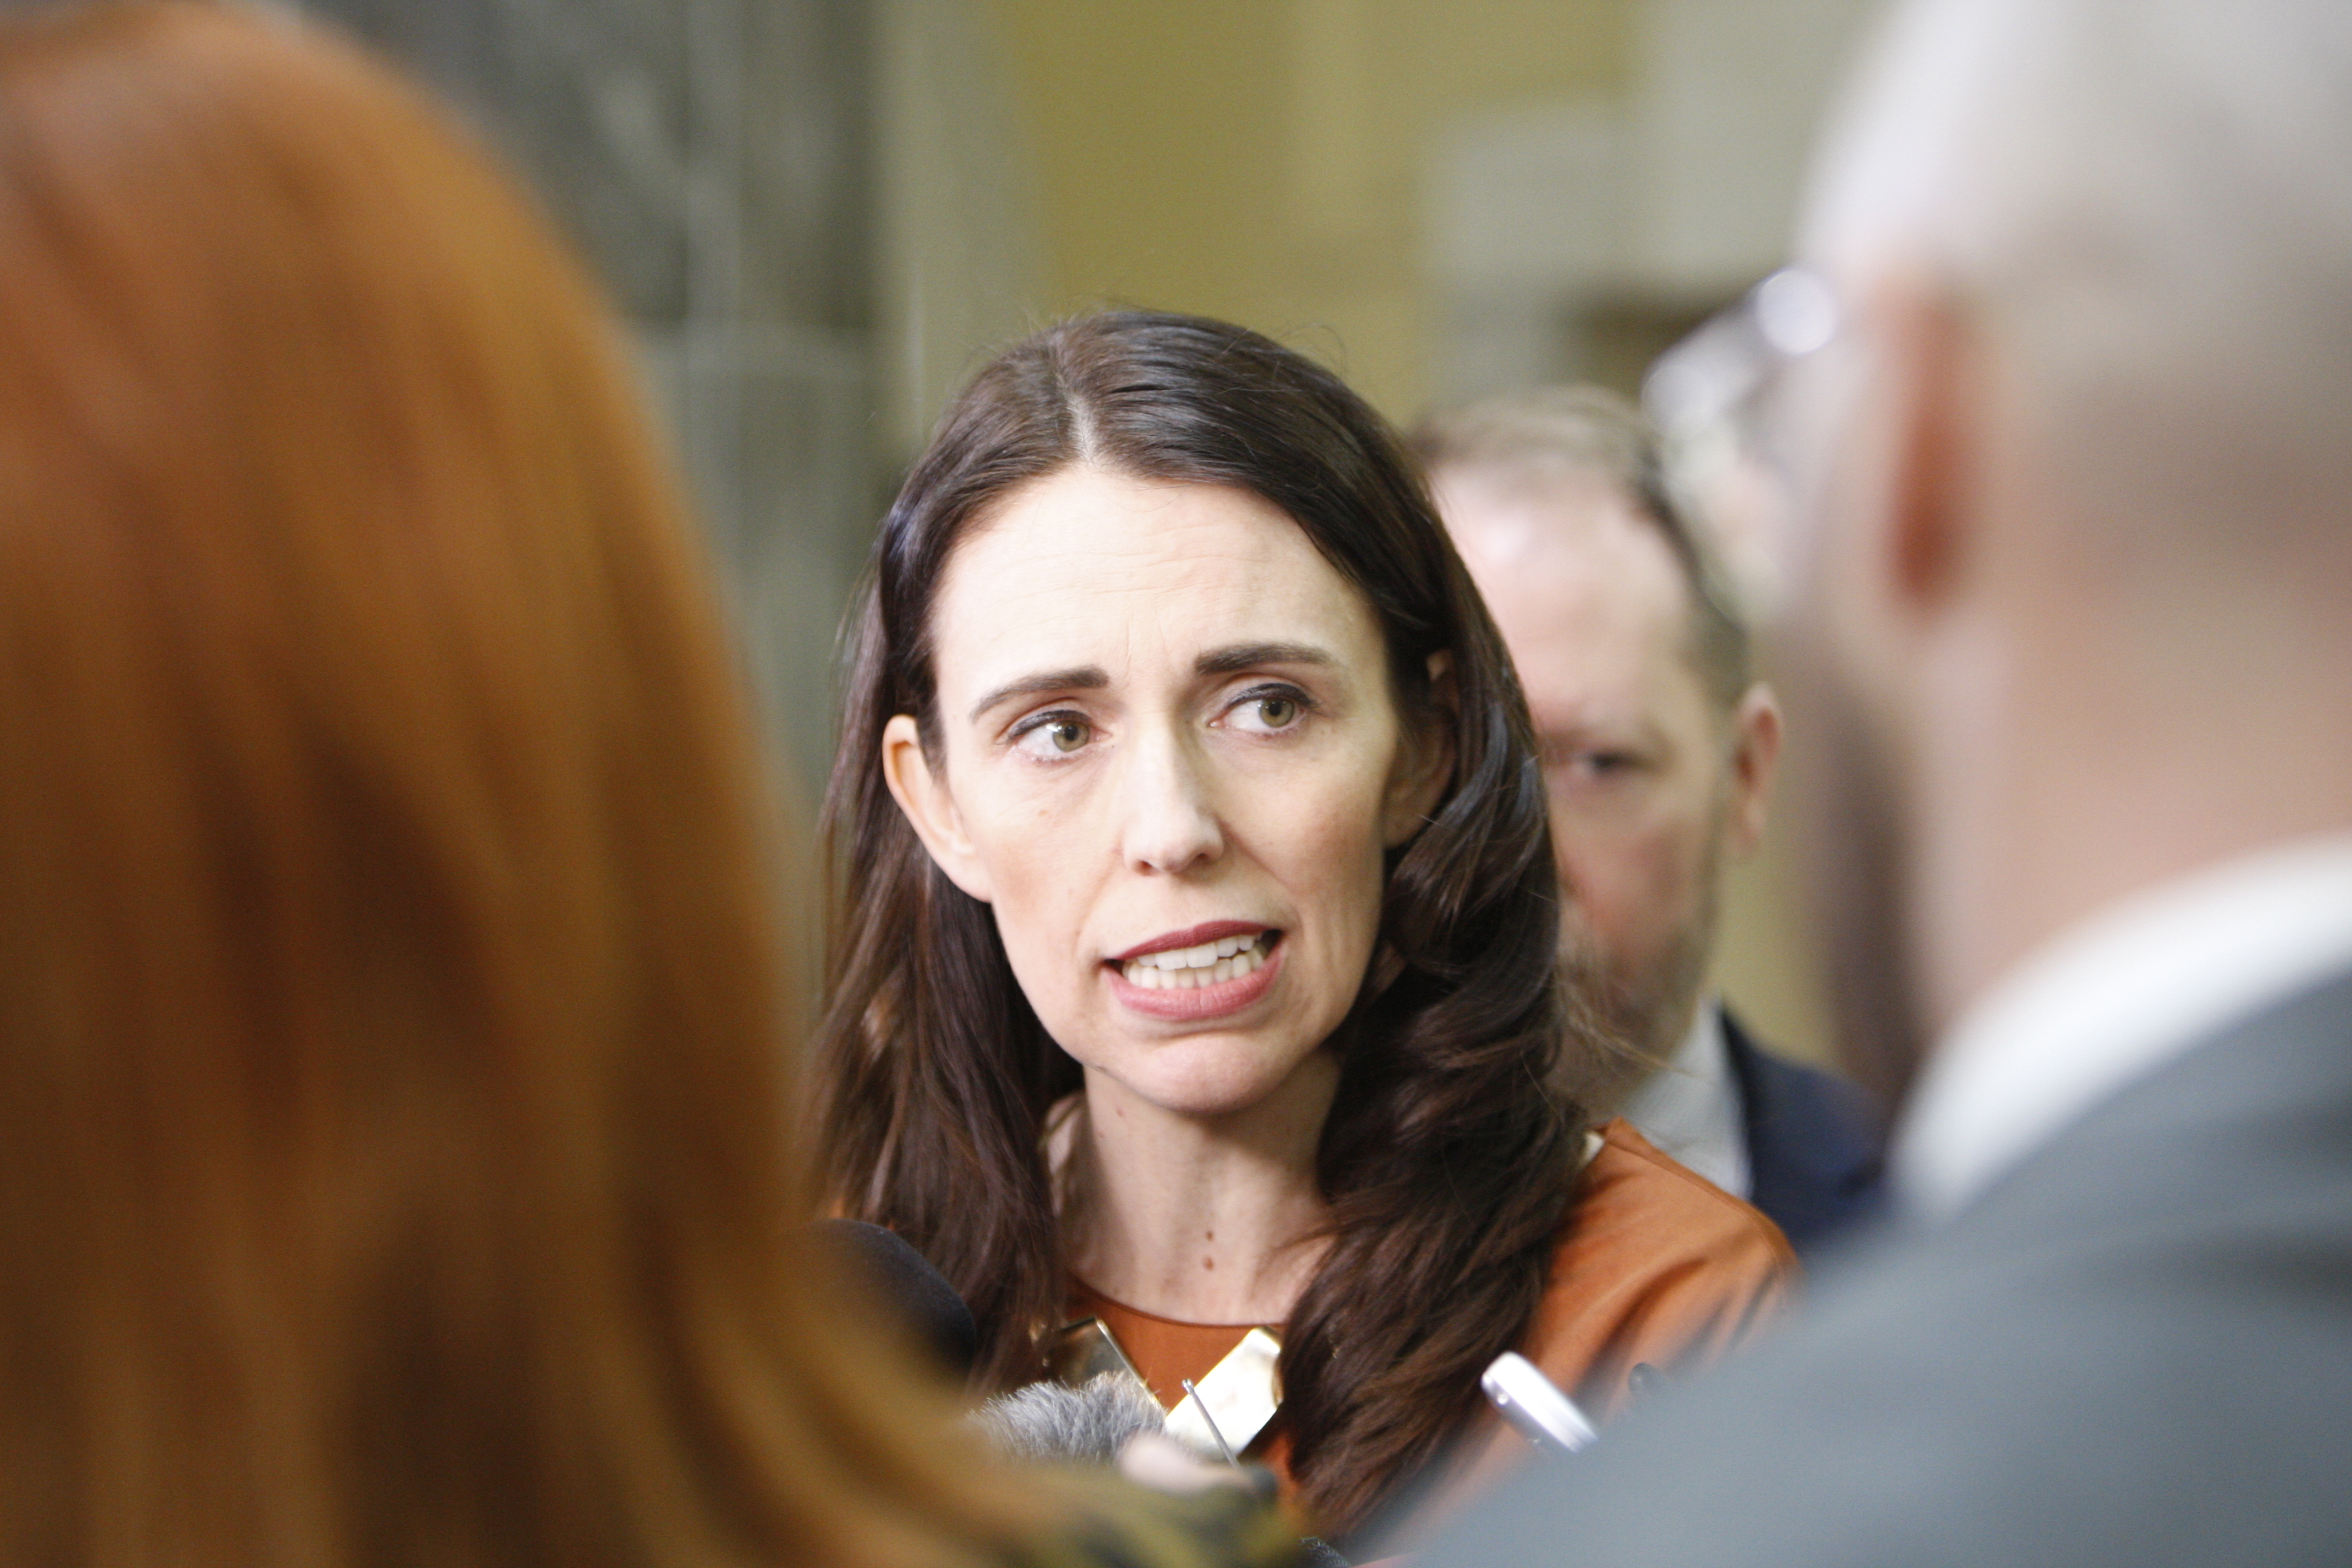 Sexual assault claim against party tests New Zealand leader